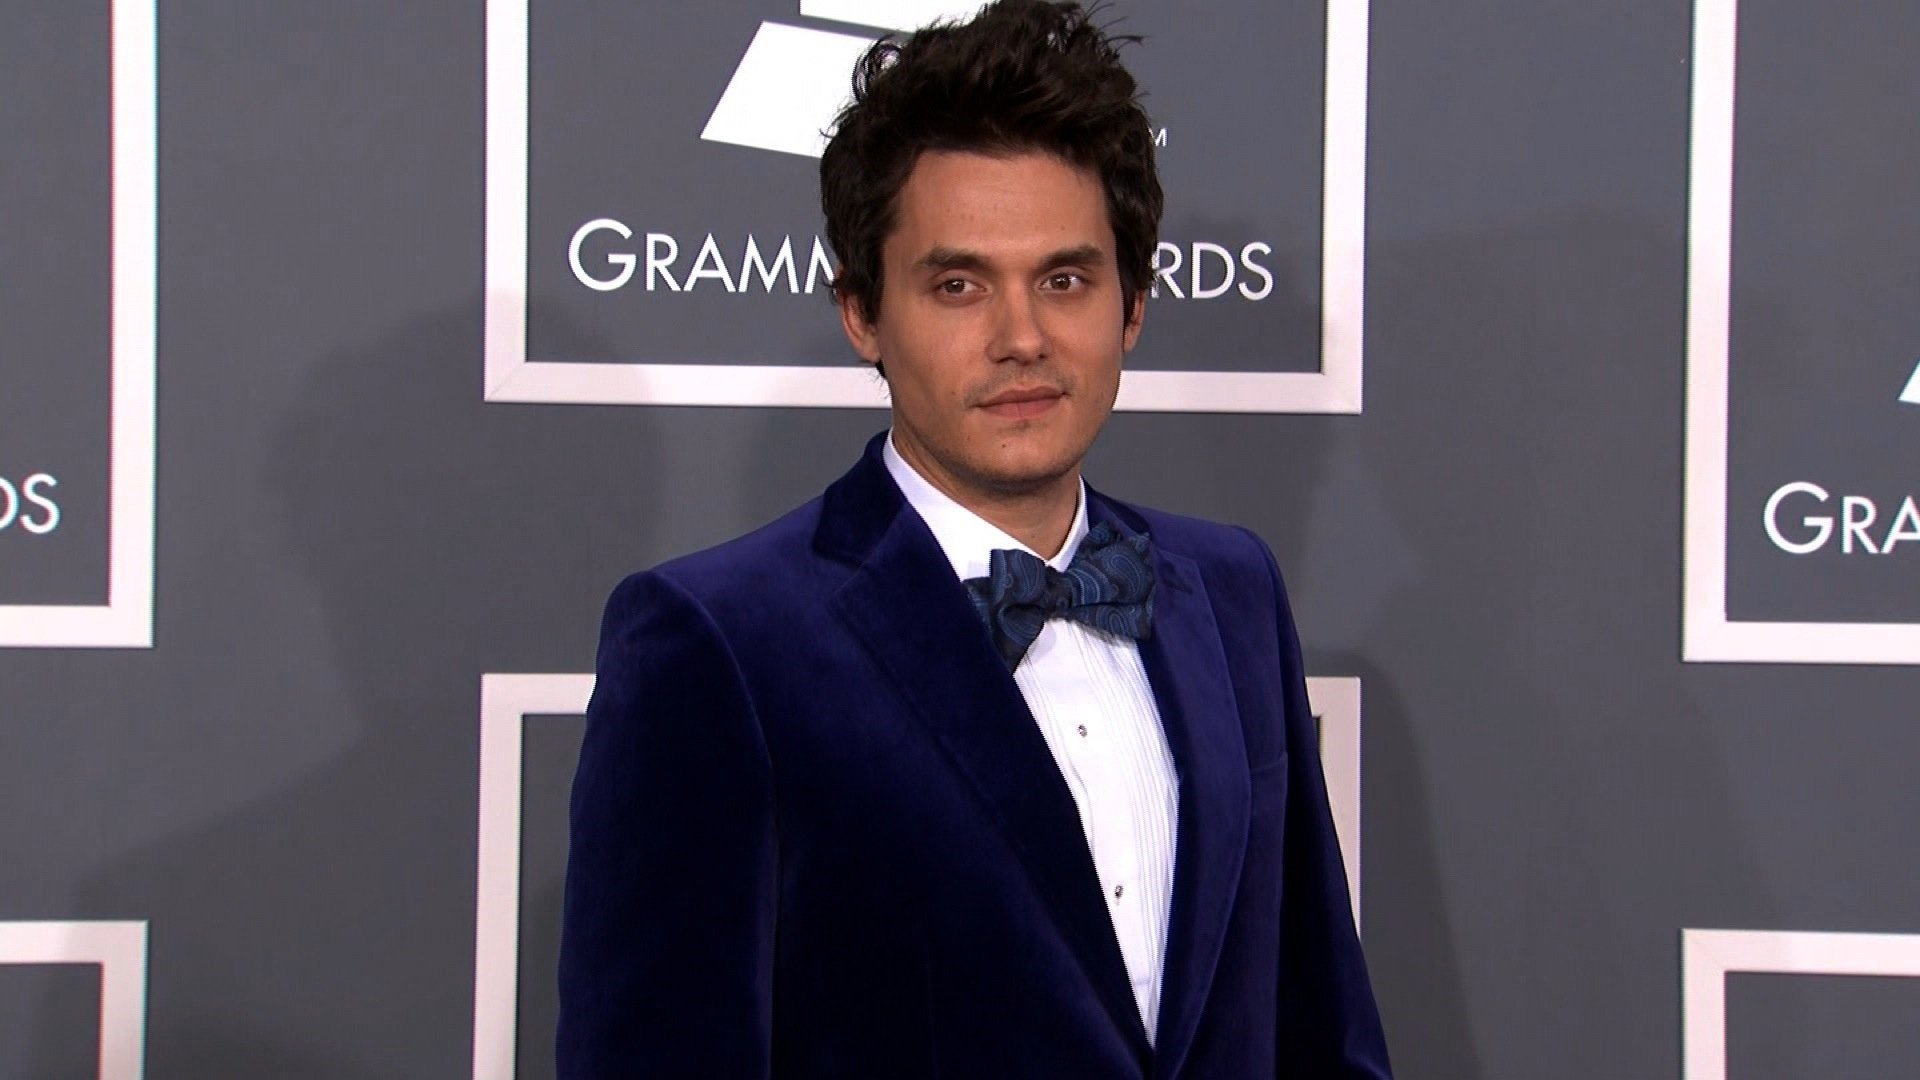 John Mayer is recovering following an emergency appendectomy, his representative confirms to CNN. The singer is seen here on the red carpet at the 2013 Grammys. (File Photo)